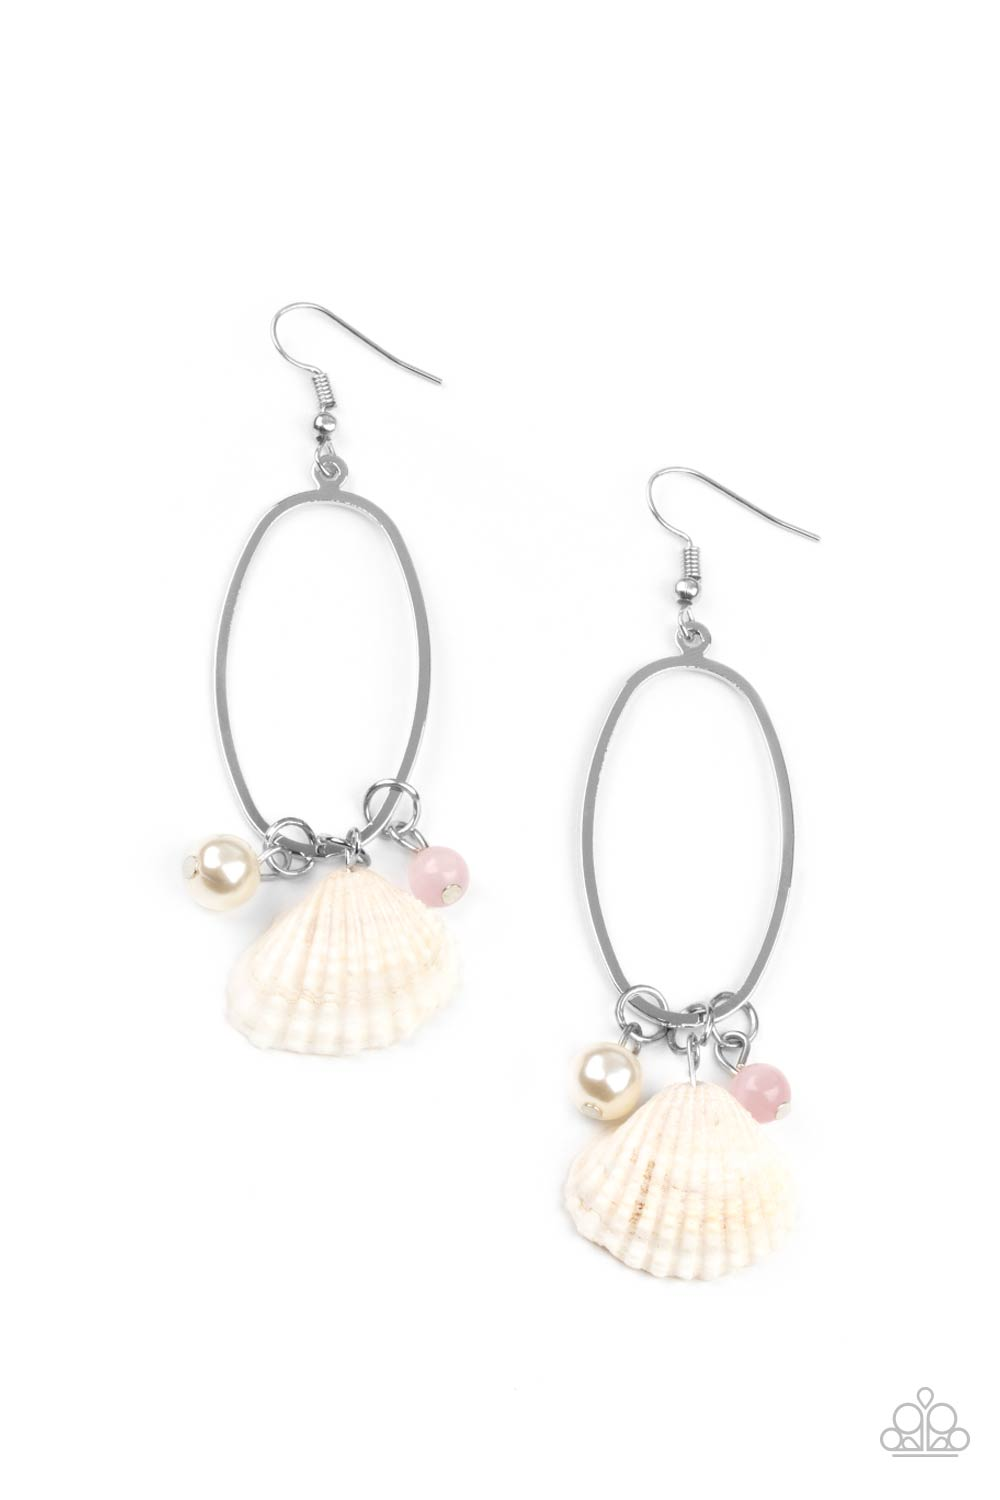 five-dollar-jewelry-this-too-shell-pass-pink-earrings-paparazzi-accessories